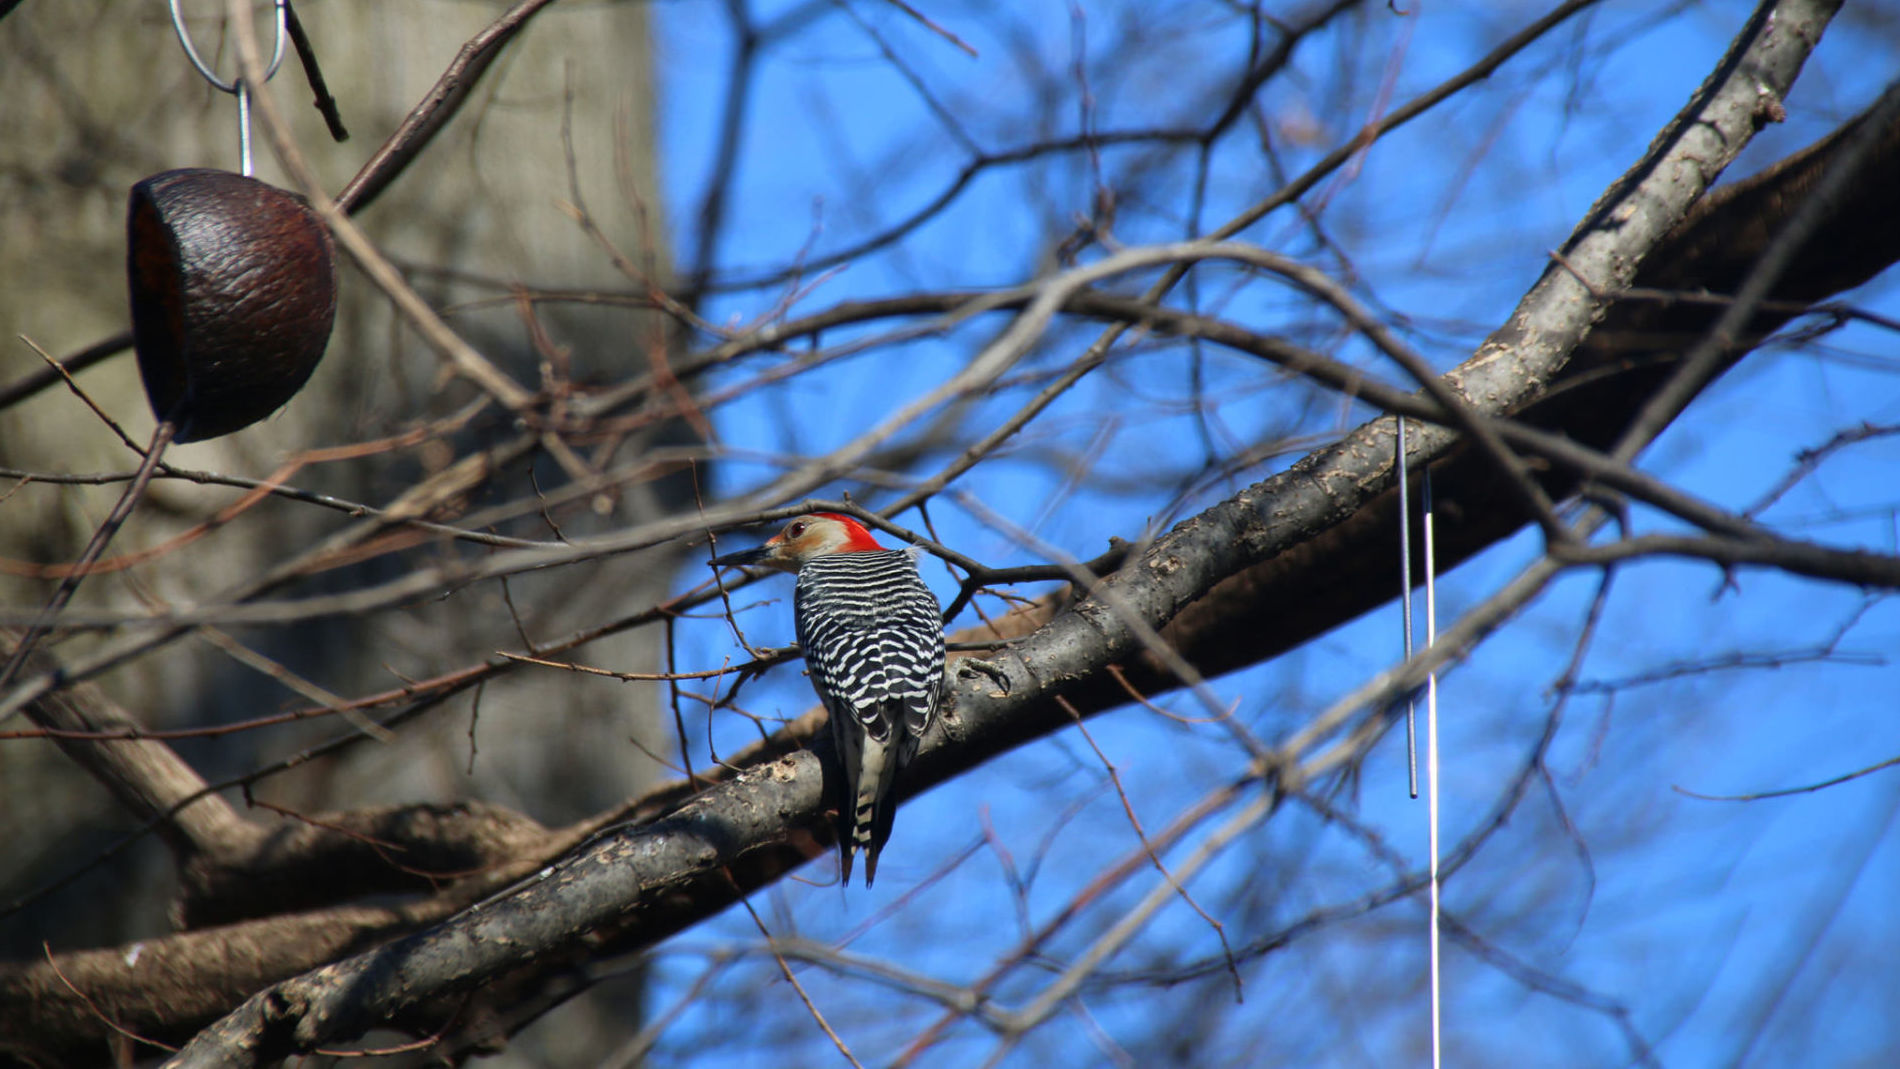 Red-Bellied Woodpecker in The Ramble at Central Park (New York City) - February 2017. Photo: Flickr/Corey Seeman